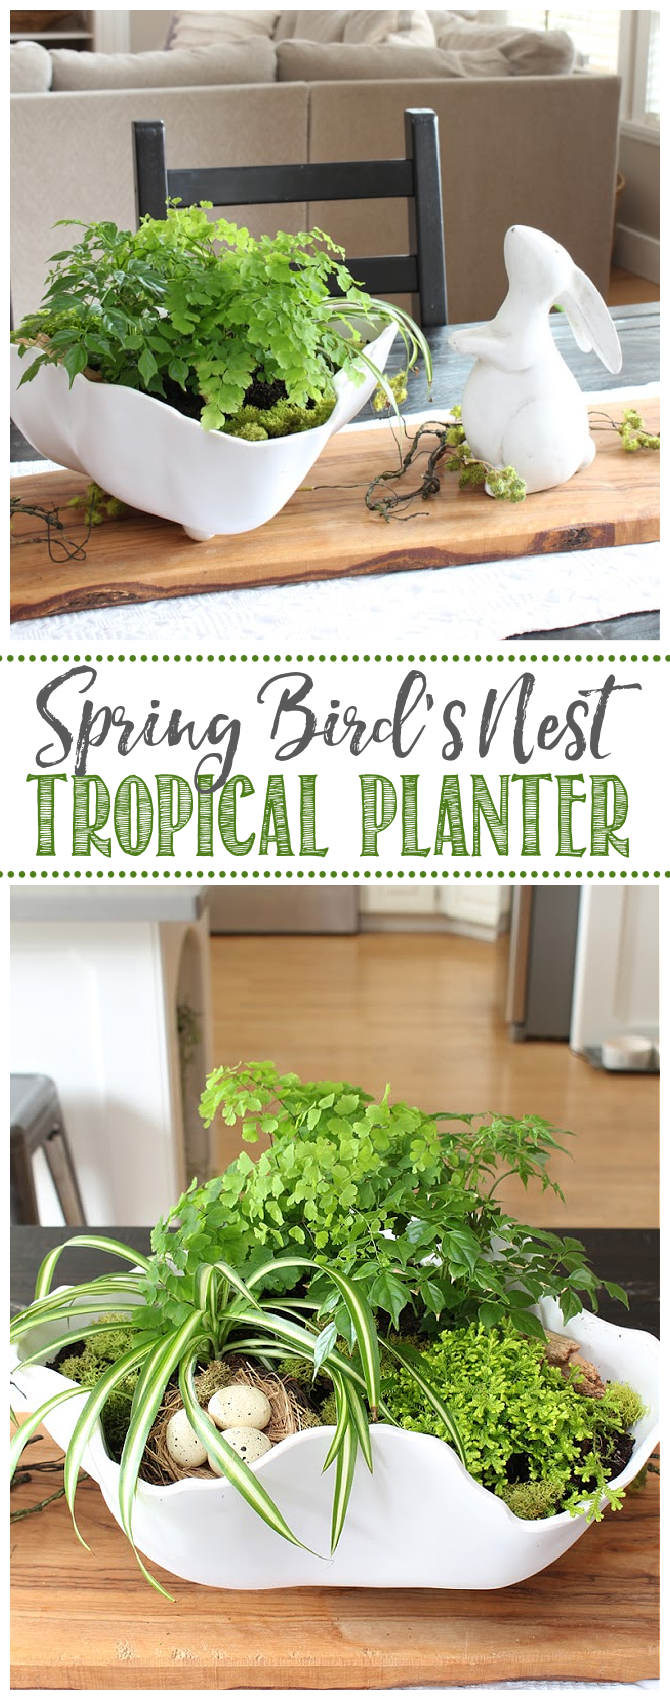 Spring tropical planter with little bird's nest.